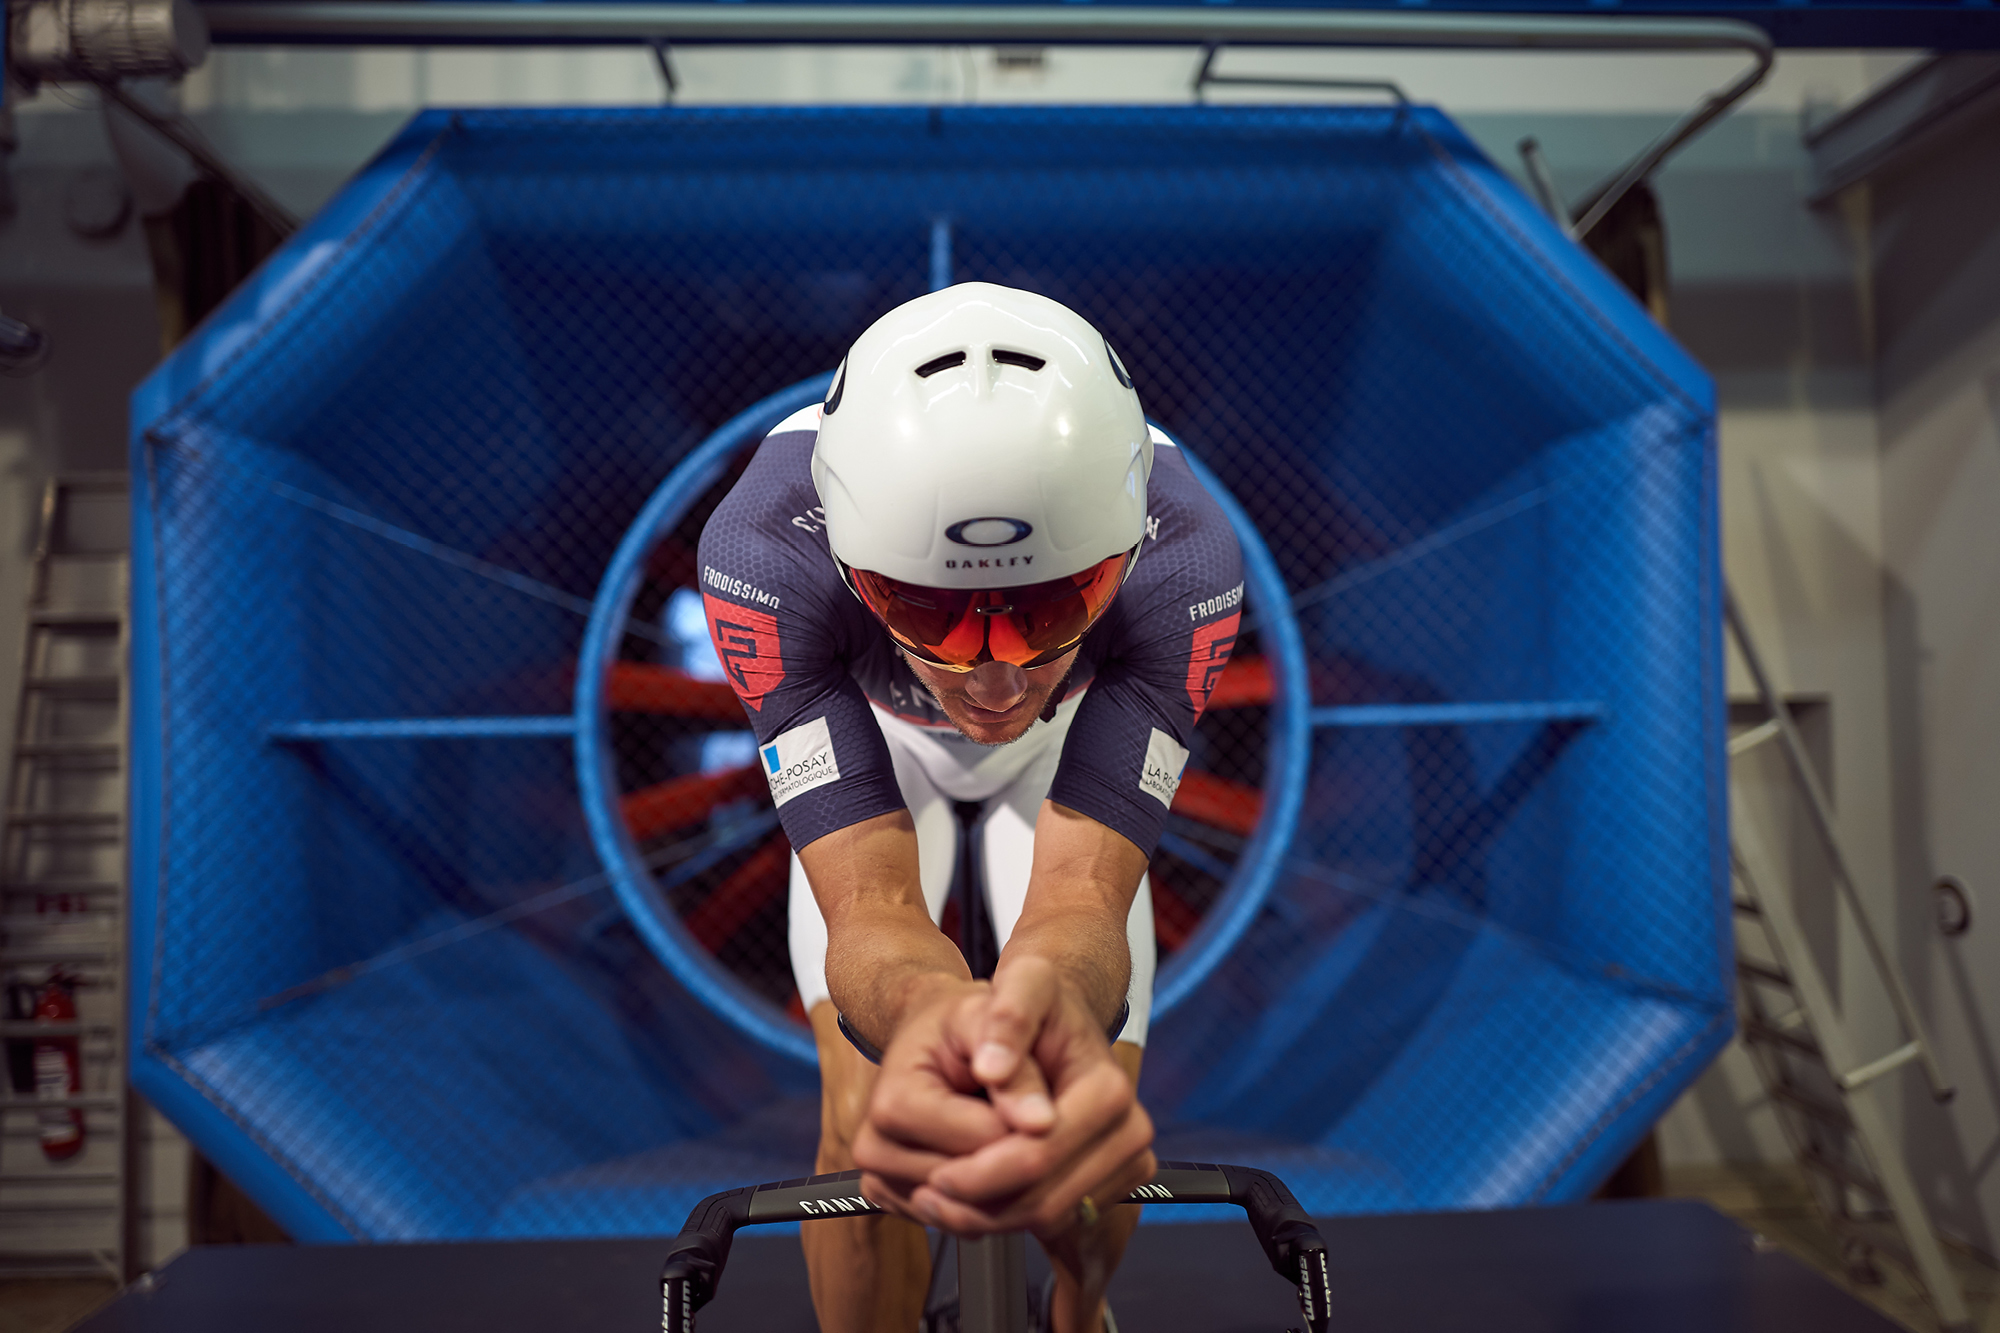 Ryzon has been developed for endurance athletes